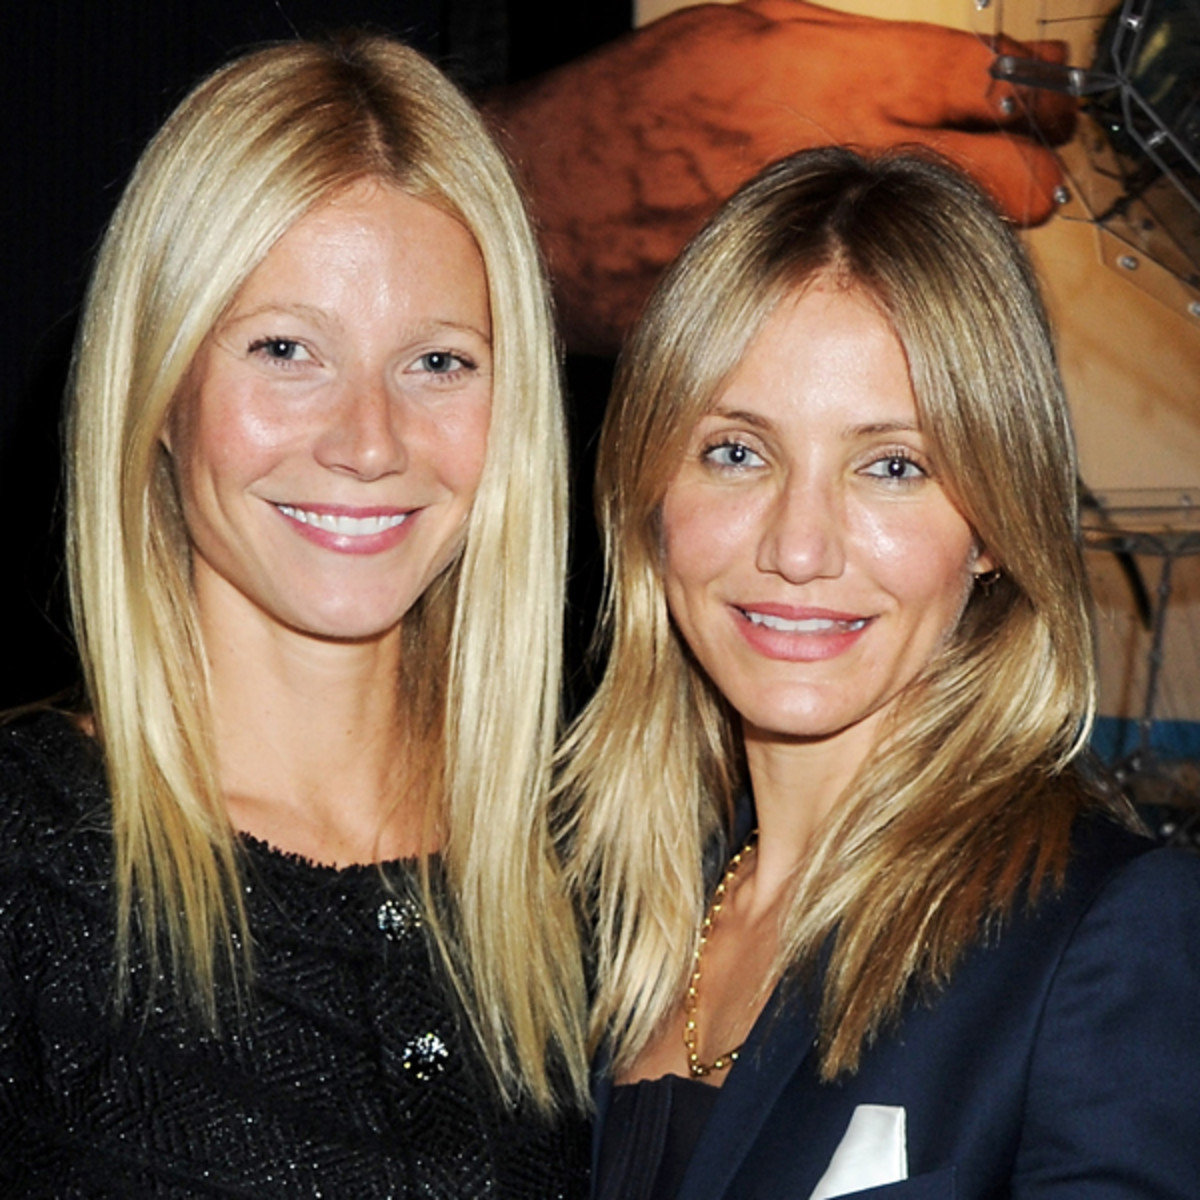 Gwyneth-Paltrow-and-Cameron-Diaz-The-Arts-Club-London-October-2012